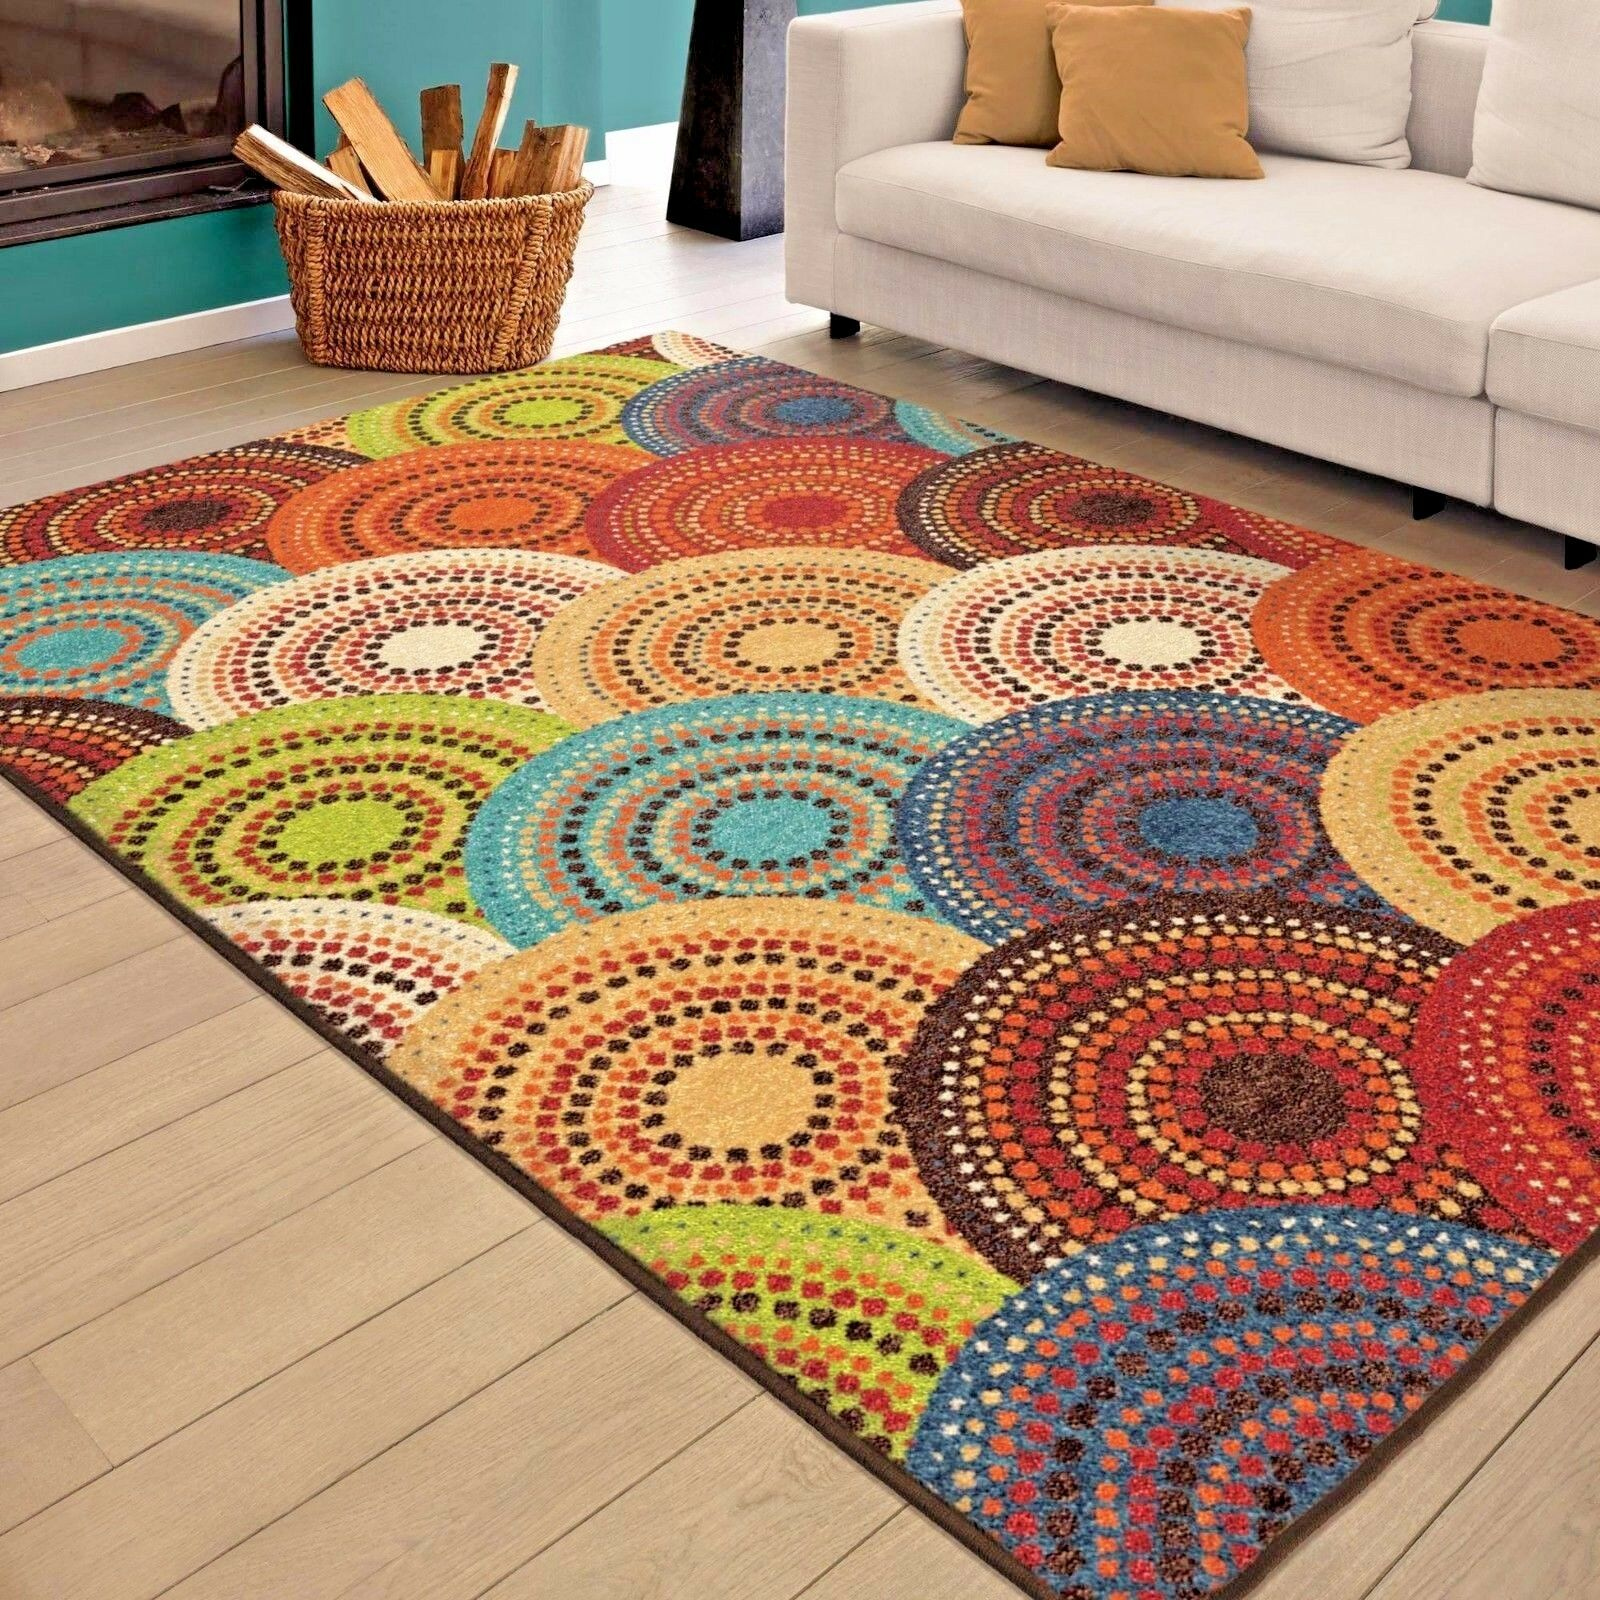 Rugs area rugs carpet 8x10 area rug floor modern colorful large big cool rugs ebay How to buy an area rug for living room